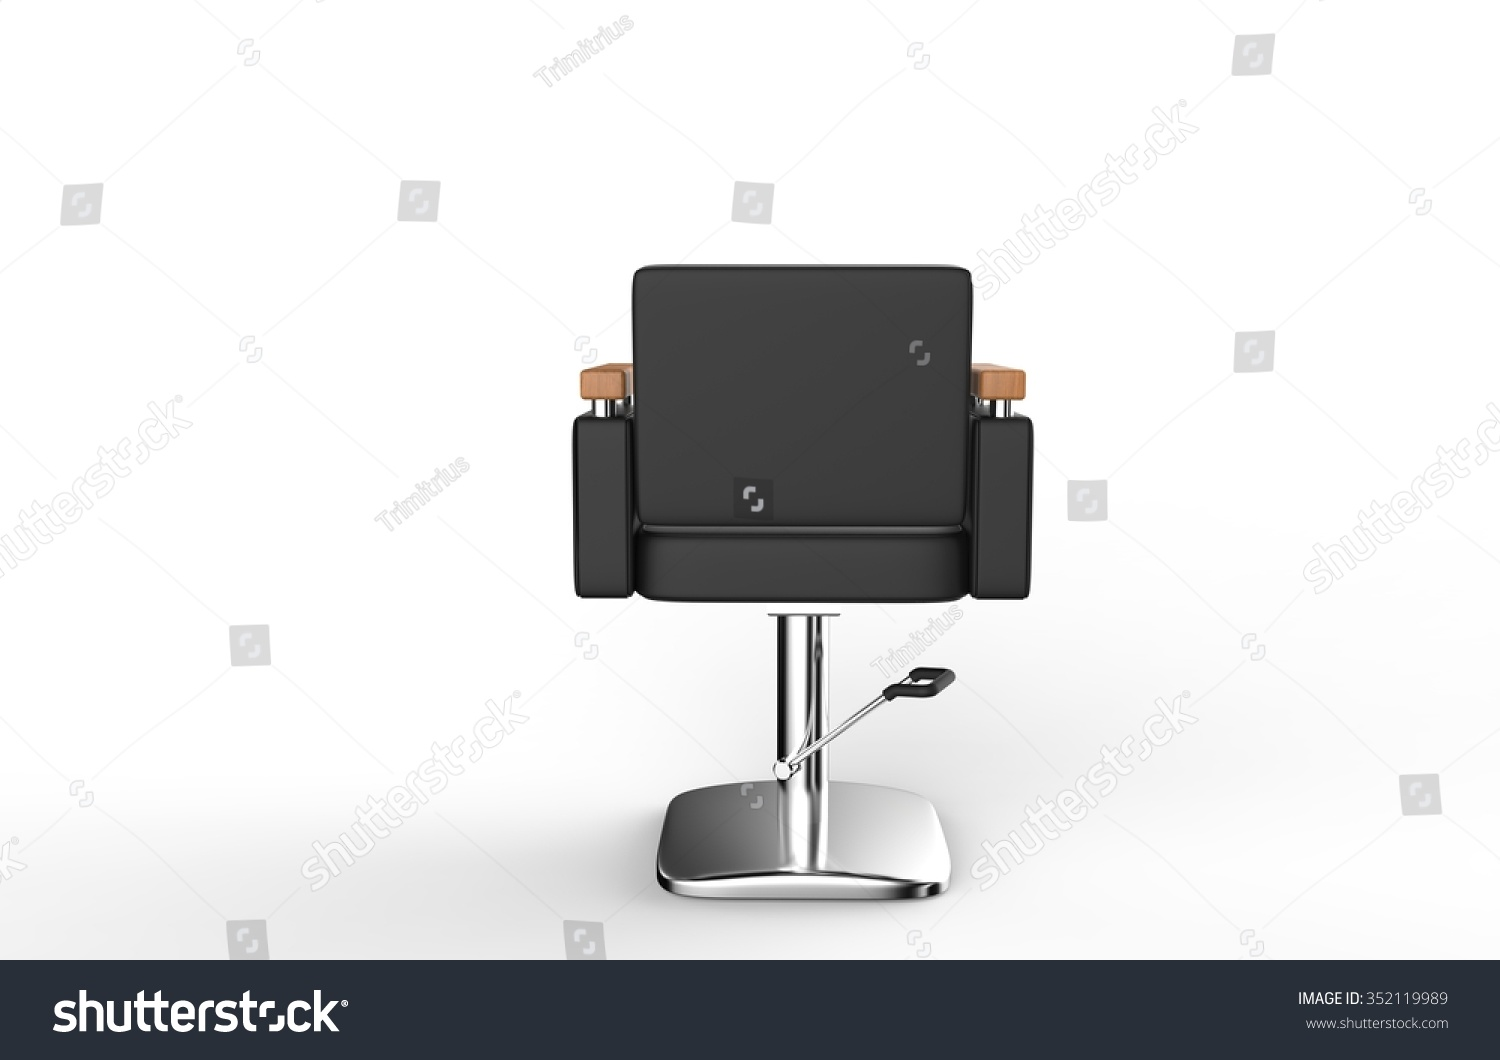 Hair salon chair isolated stock photos illustrations and vector art - Vectors Illustrations Footage Music Search Hair Salon Chair Back View Preview Save To A Lightbox